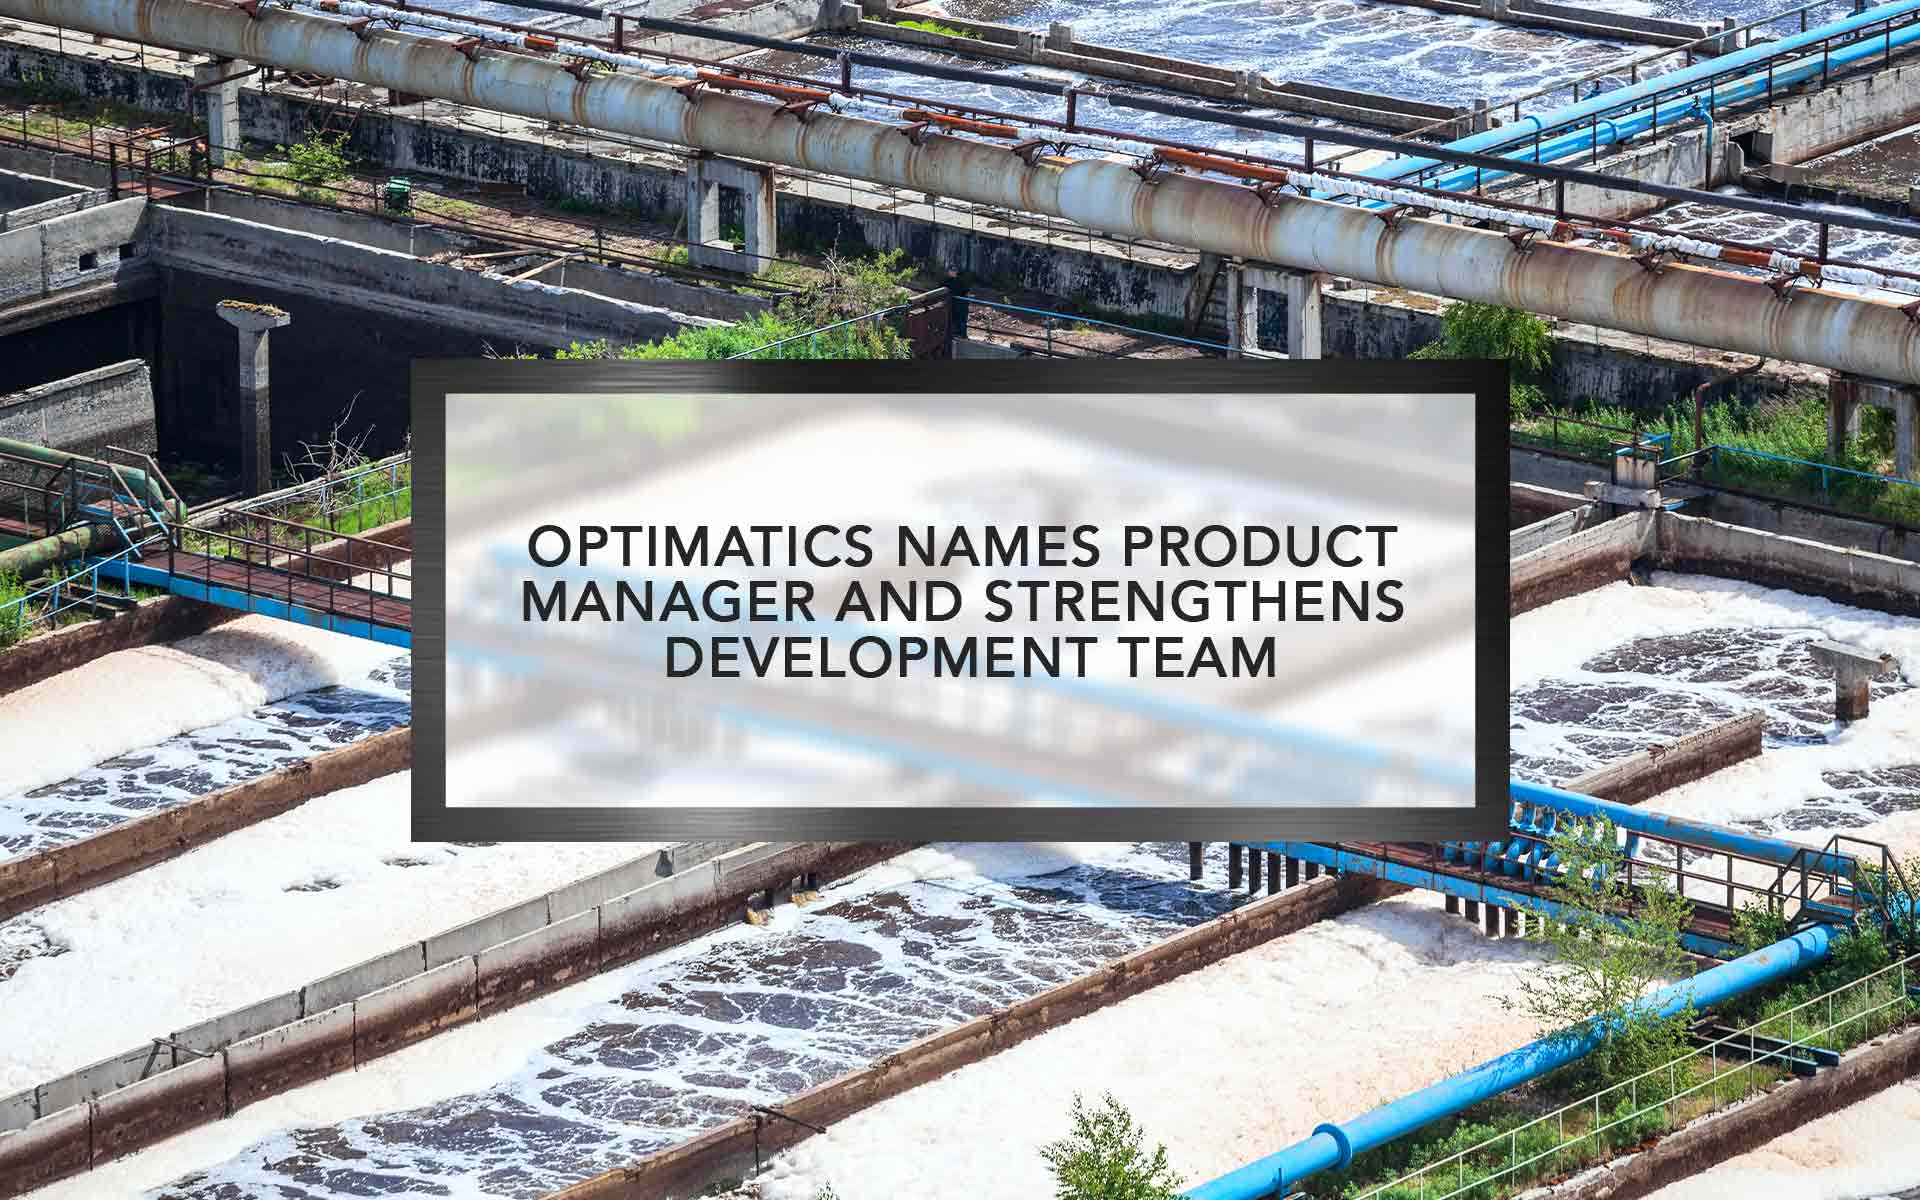 Optimatics names product manager and strengthens development team